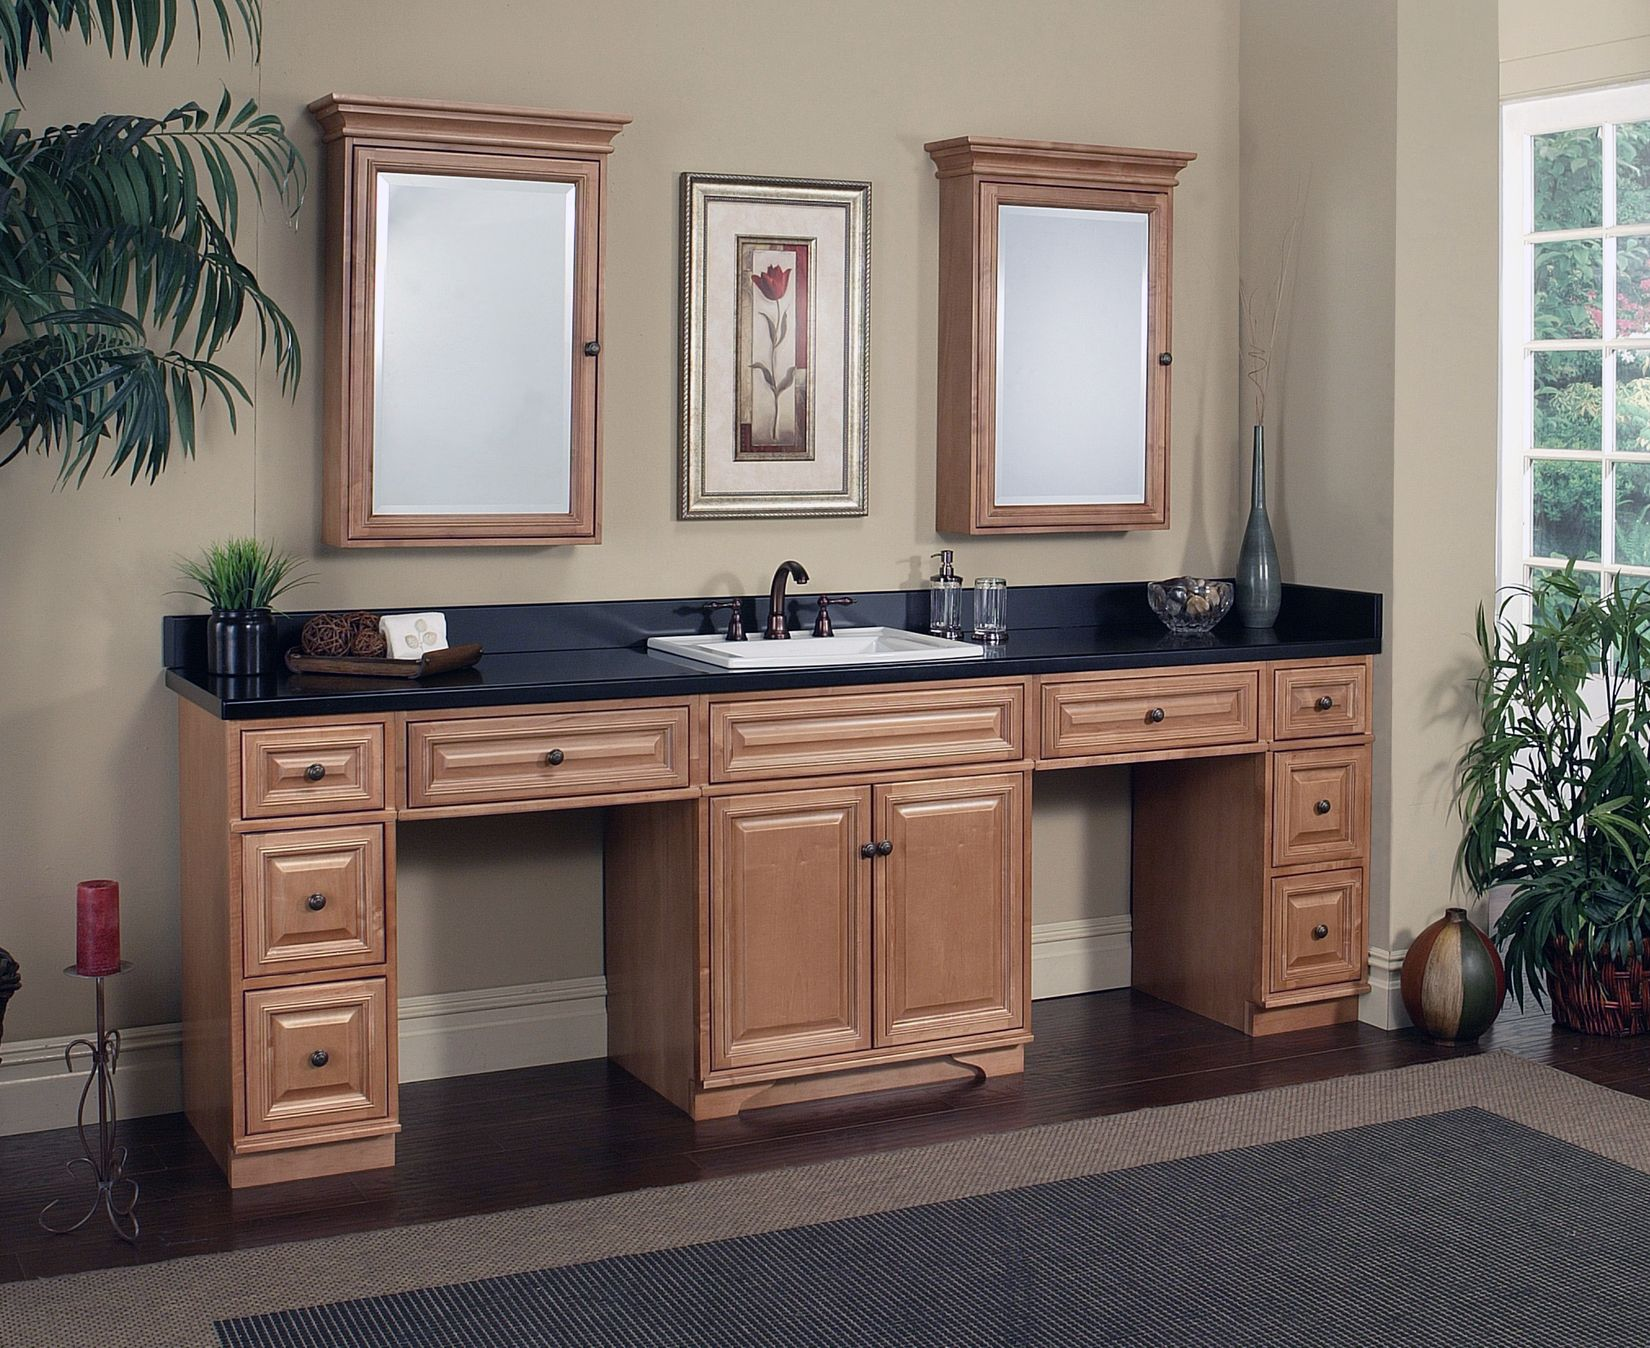 The Briarwood Modular Vanity Collection From Sunny Wood Find Out More At Www Sunnywood Biz Bathroom Cabinets